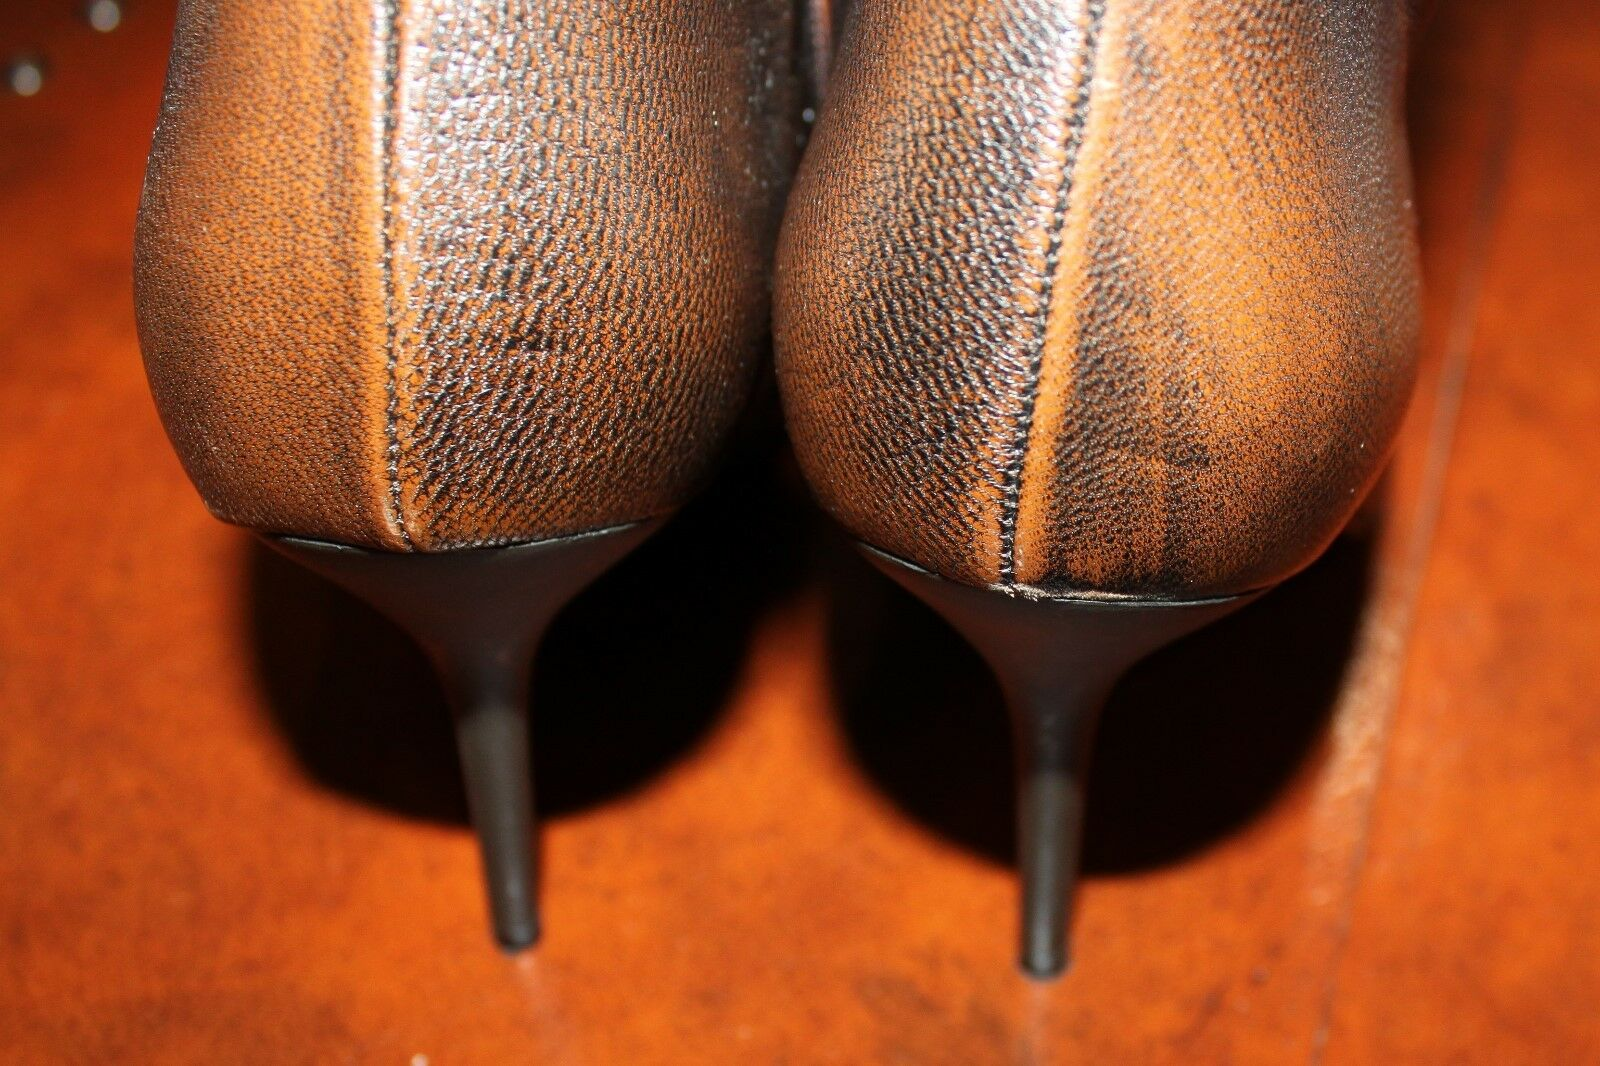 Bolsa Brown Women's Beautiful Brown Bolsa Leather Boots Italy Size 38 (7.5) 79142a